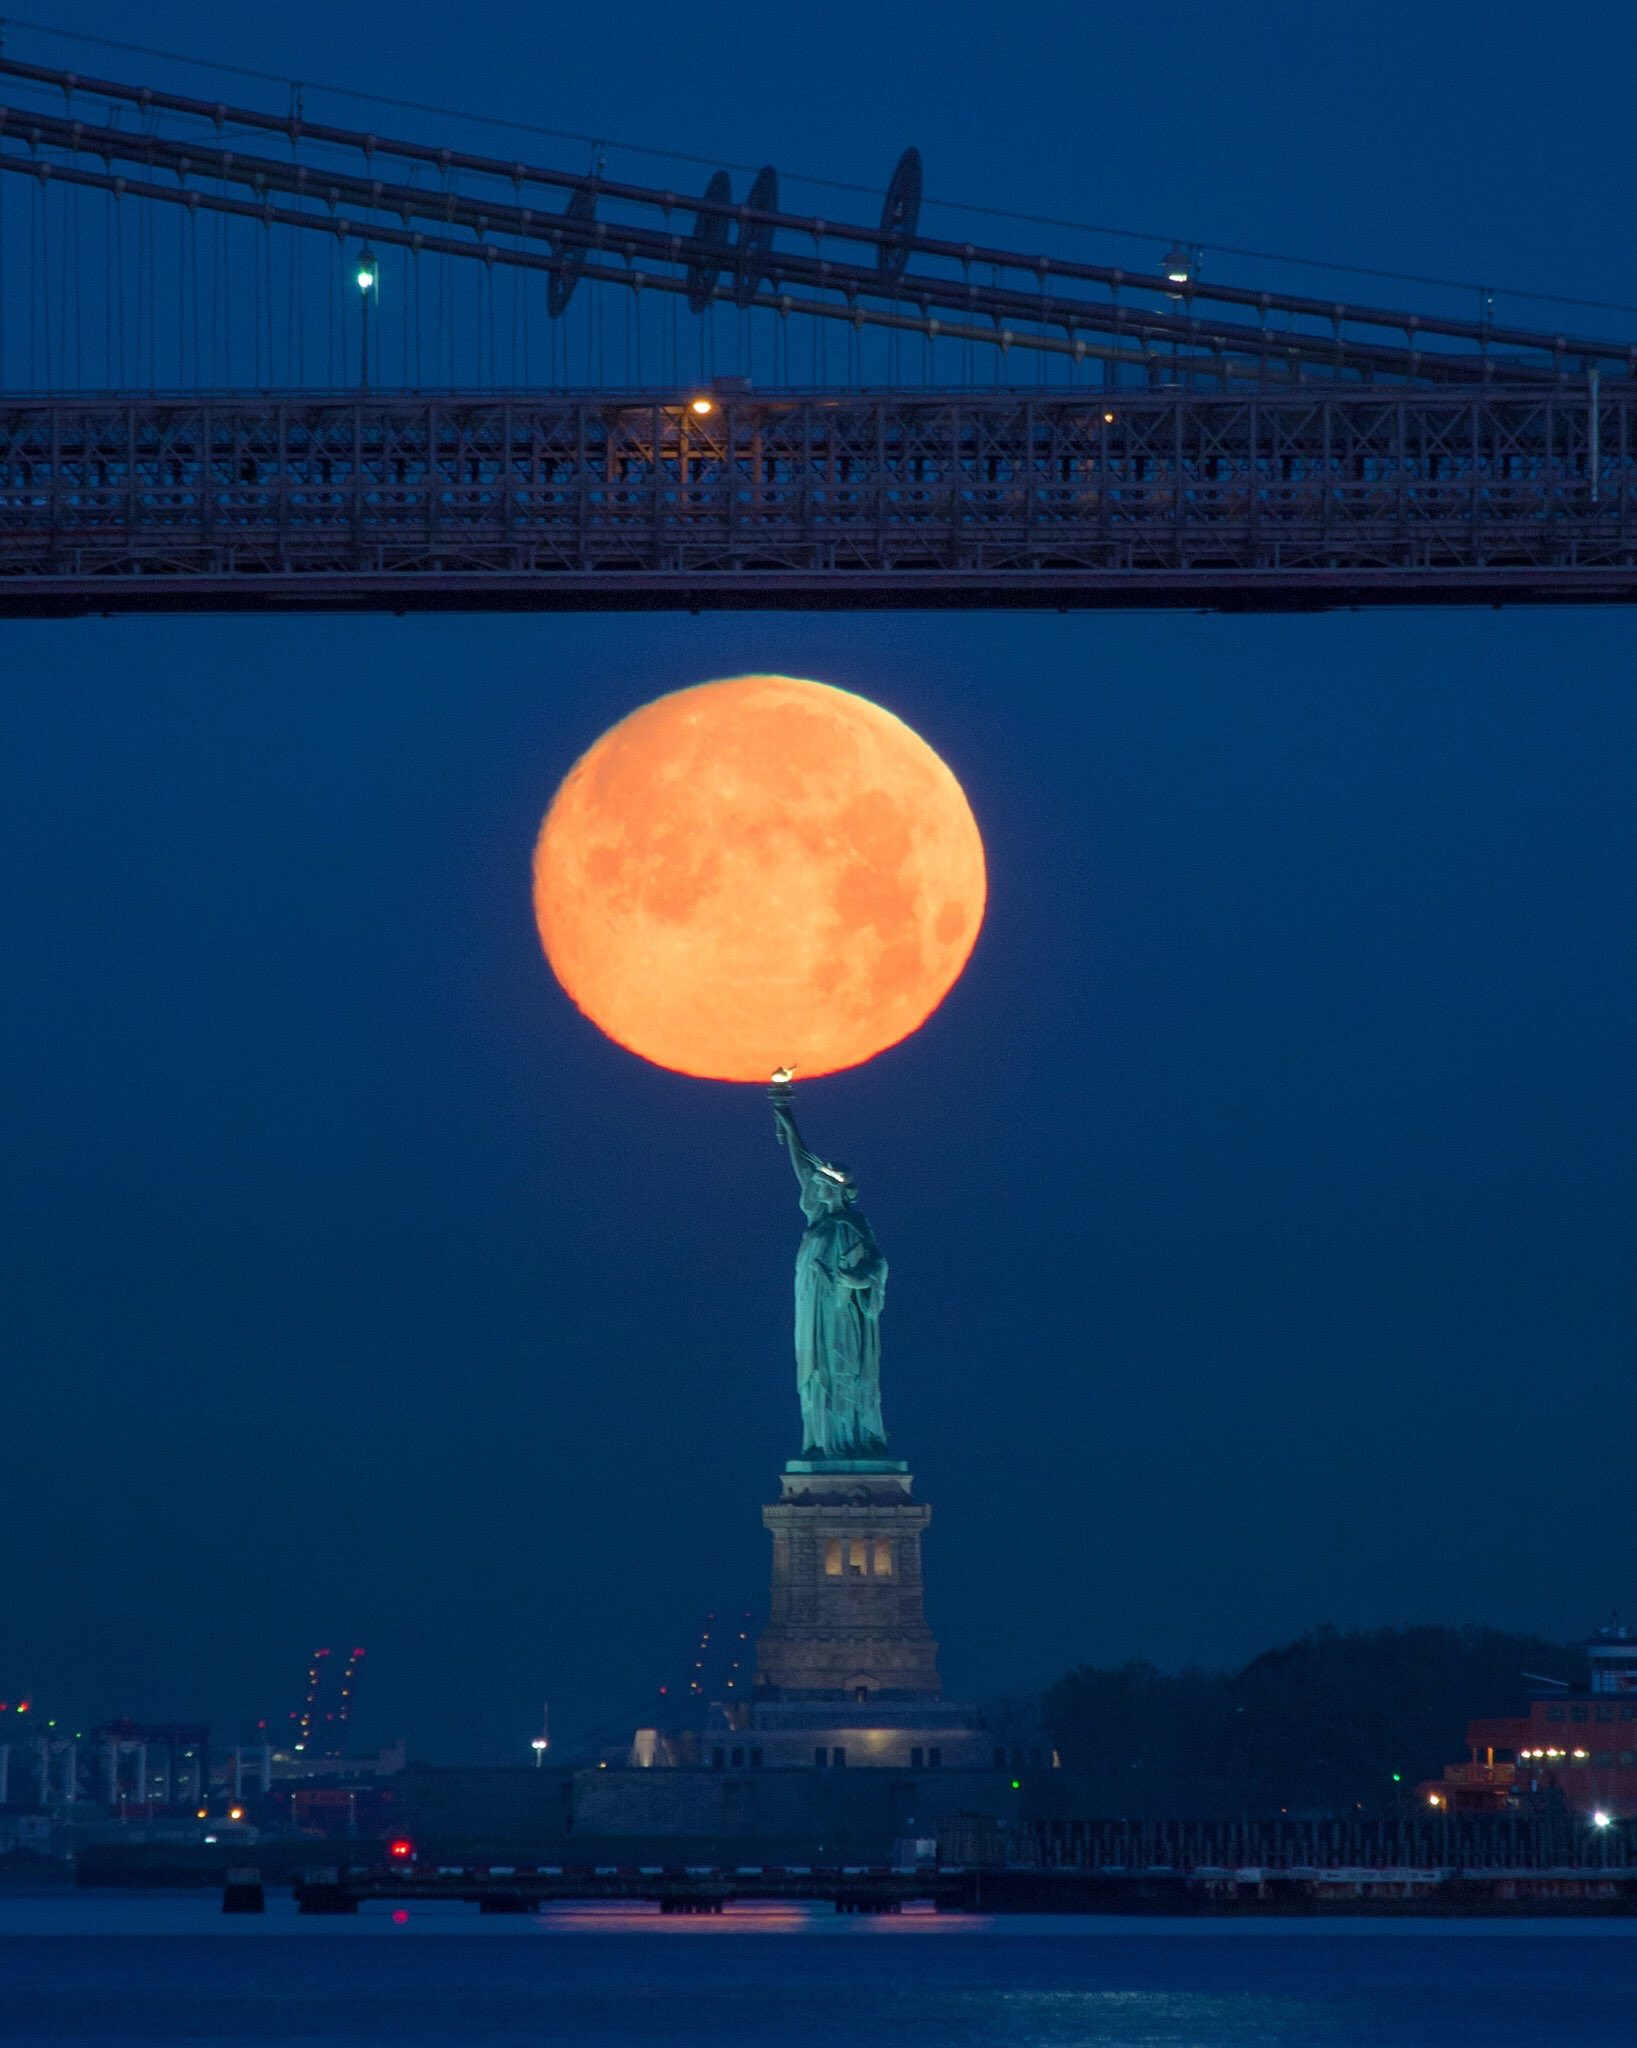 EPIC! The strawberry Moon seen from New York City, NY. Photo credit: @maximusupinNYc #NYC #Moon #Space https://t.co/ZumHtXW80C